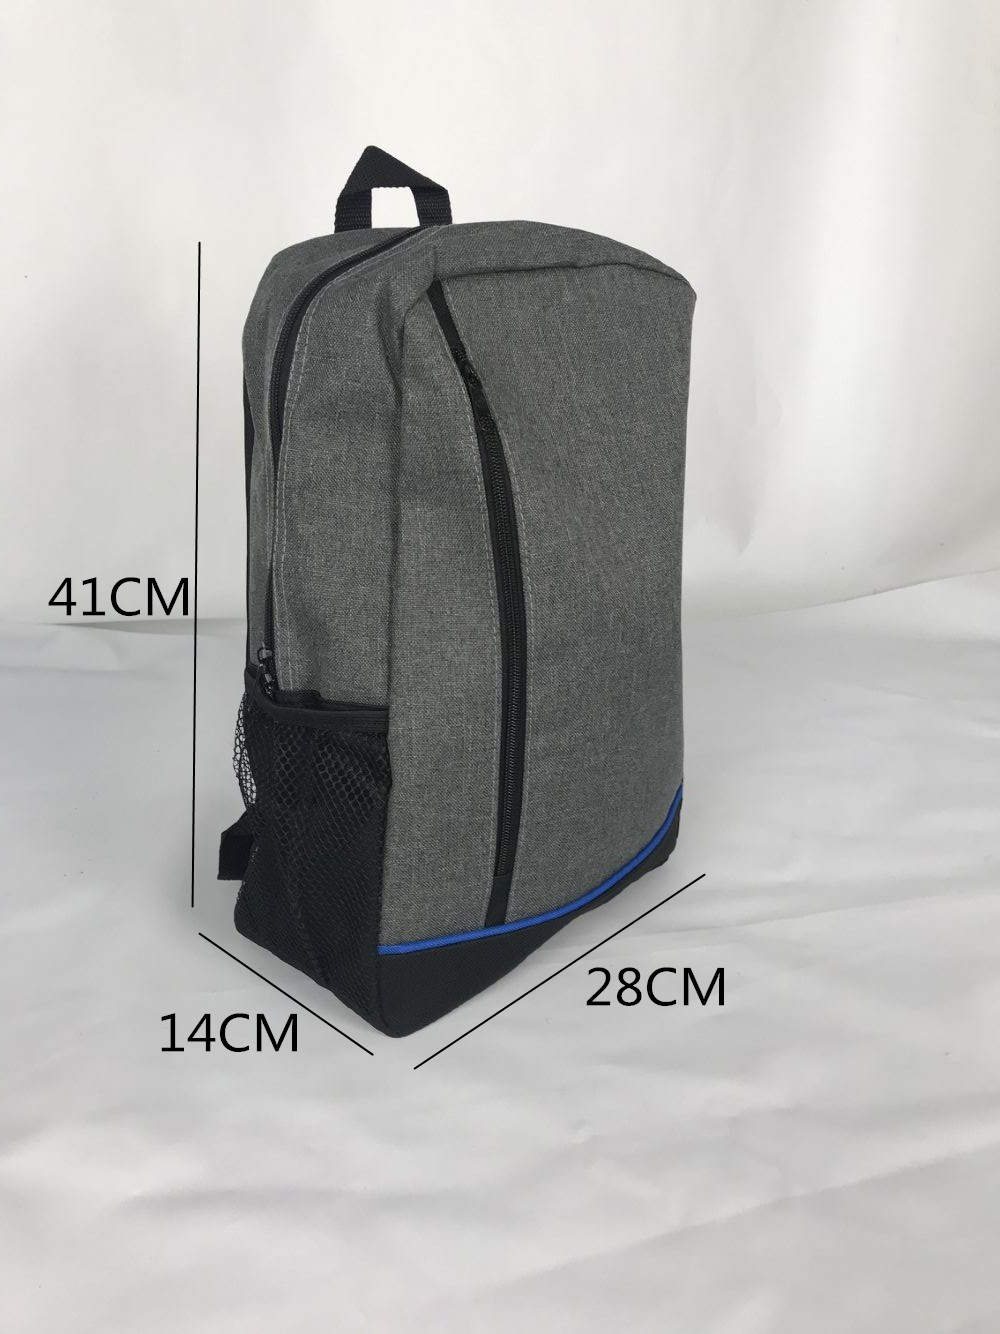 Simple, fashionable, backpack, backpack, travel, leisure, Oxford large capacity, trend, travel and travel package